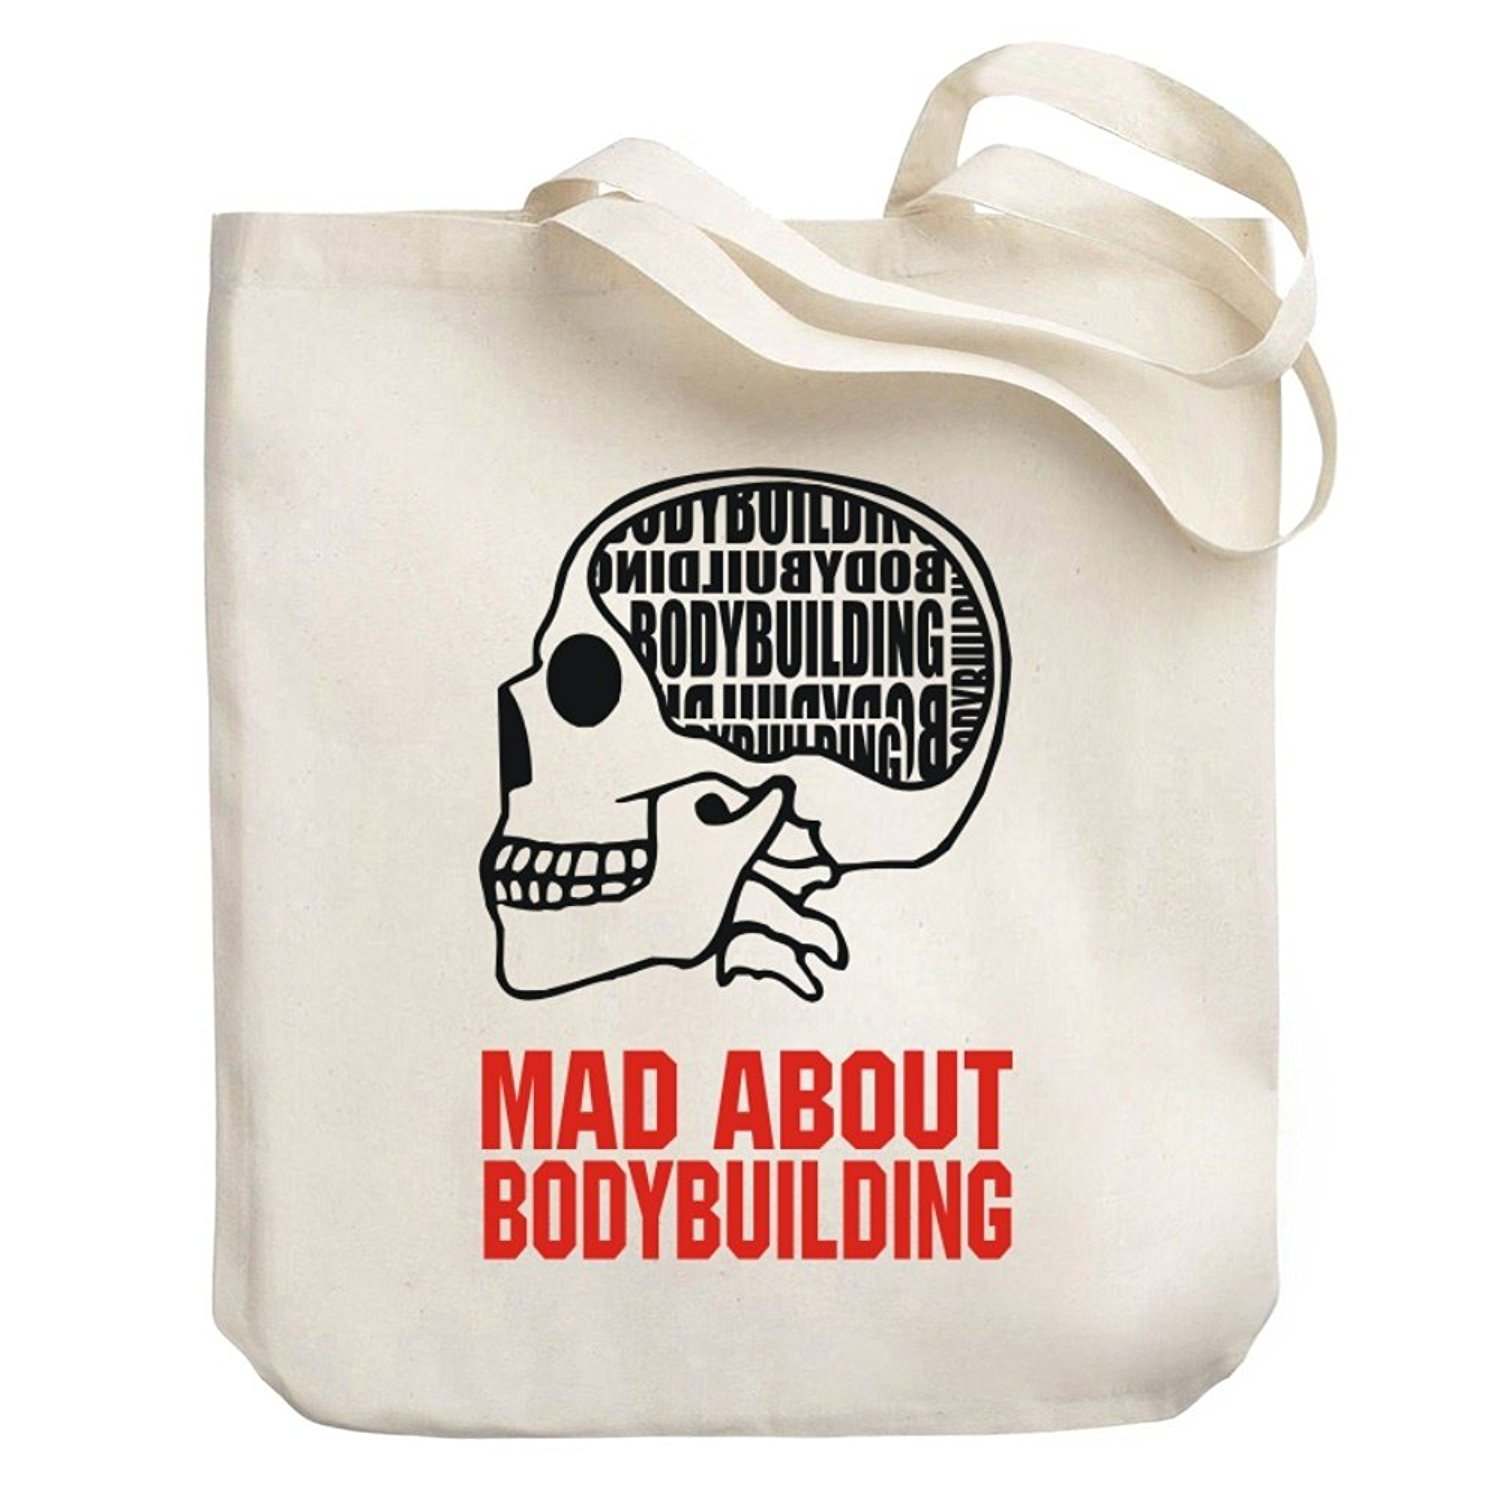 Teeburon MAD ABOUT Bodybuilding SKULL Canvas Tote Bag